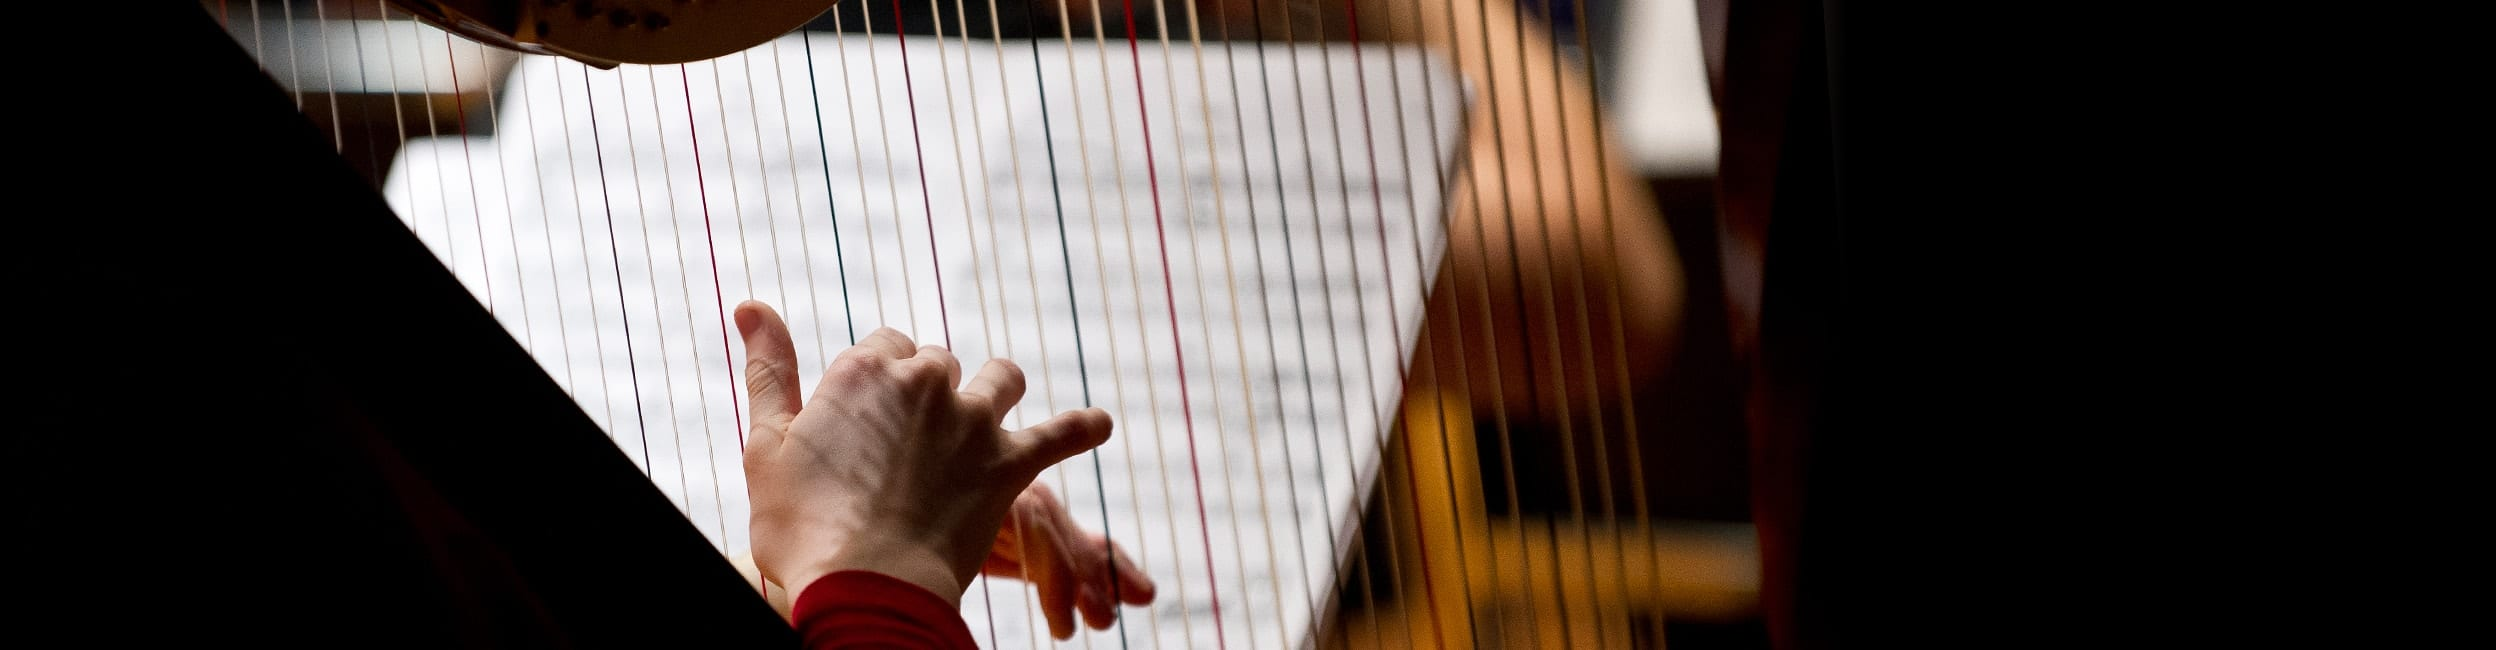 close-up photo of hands playing harp